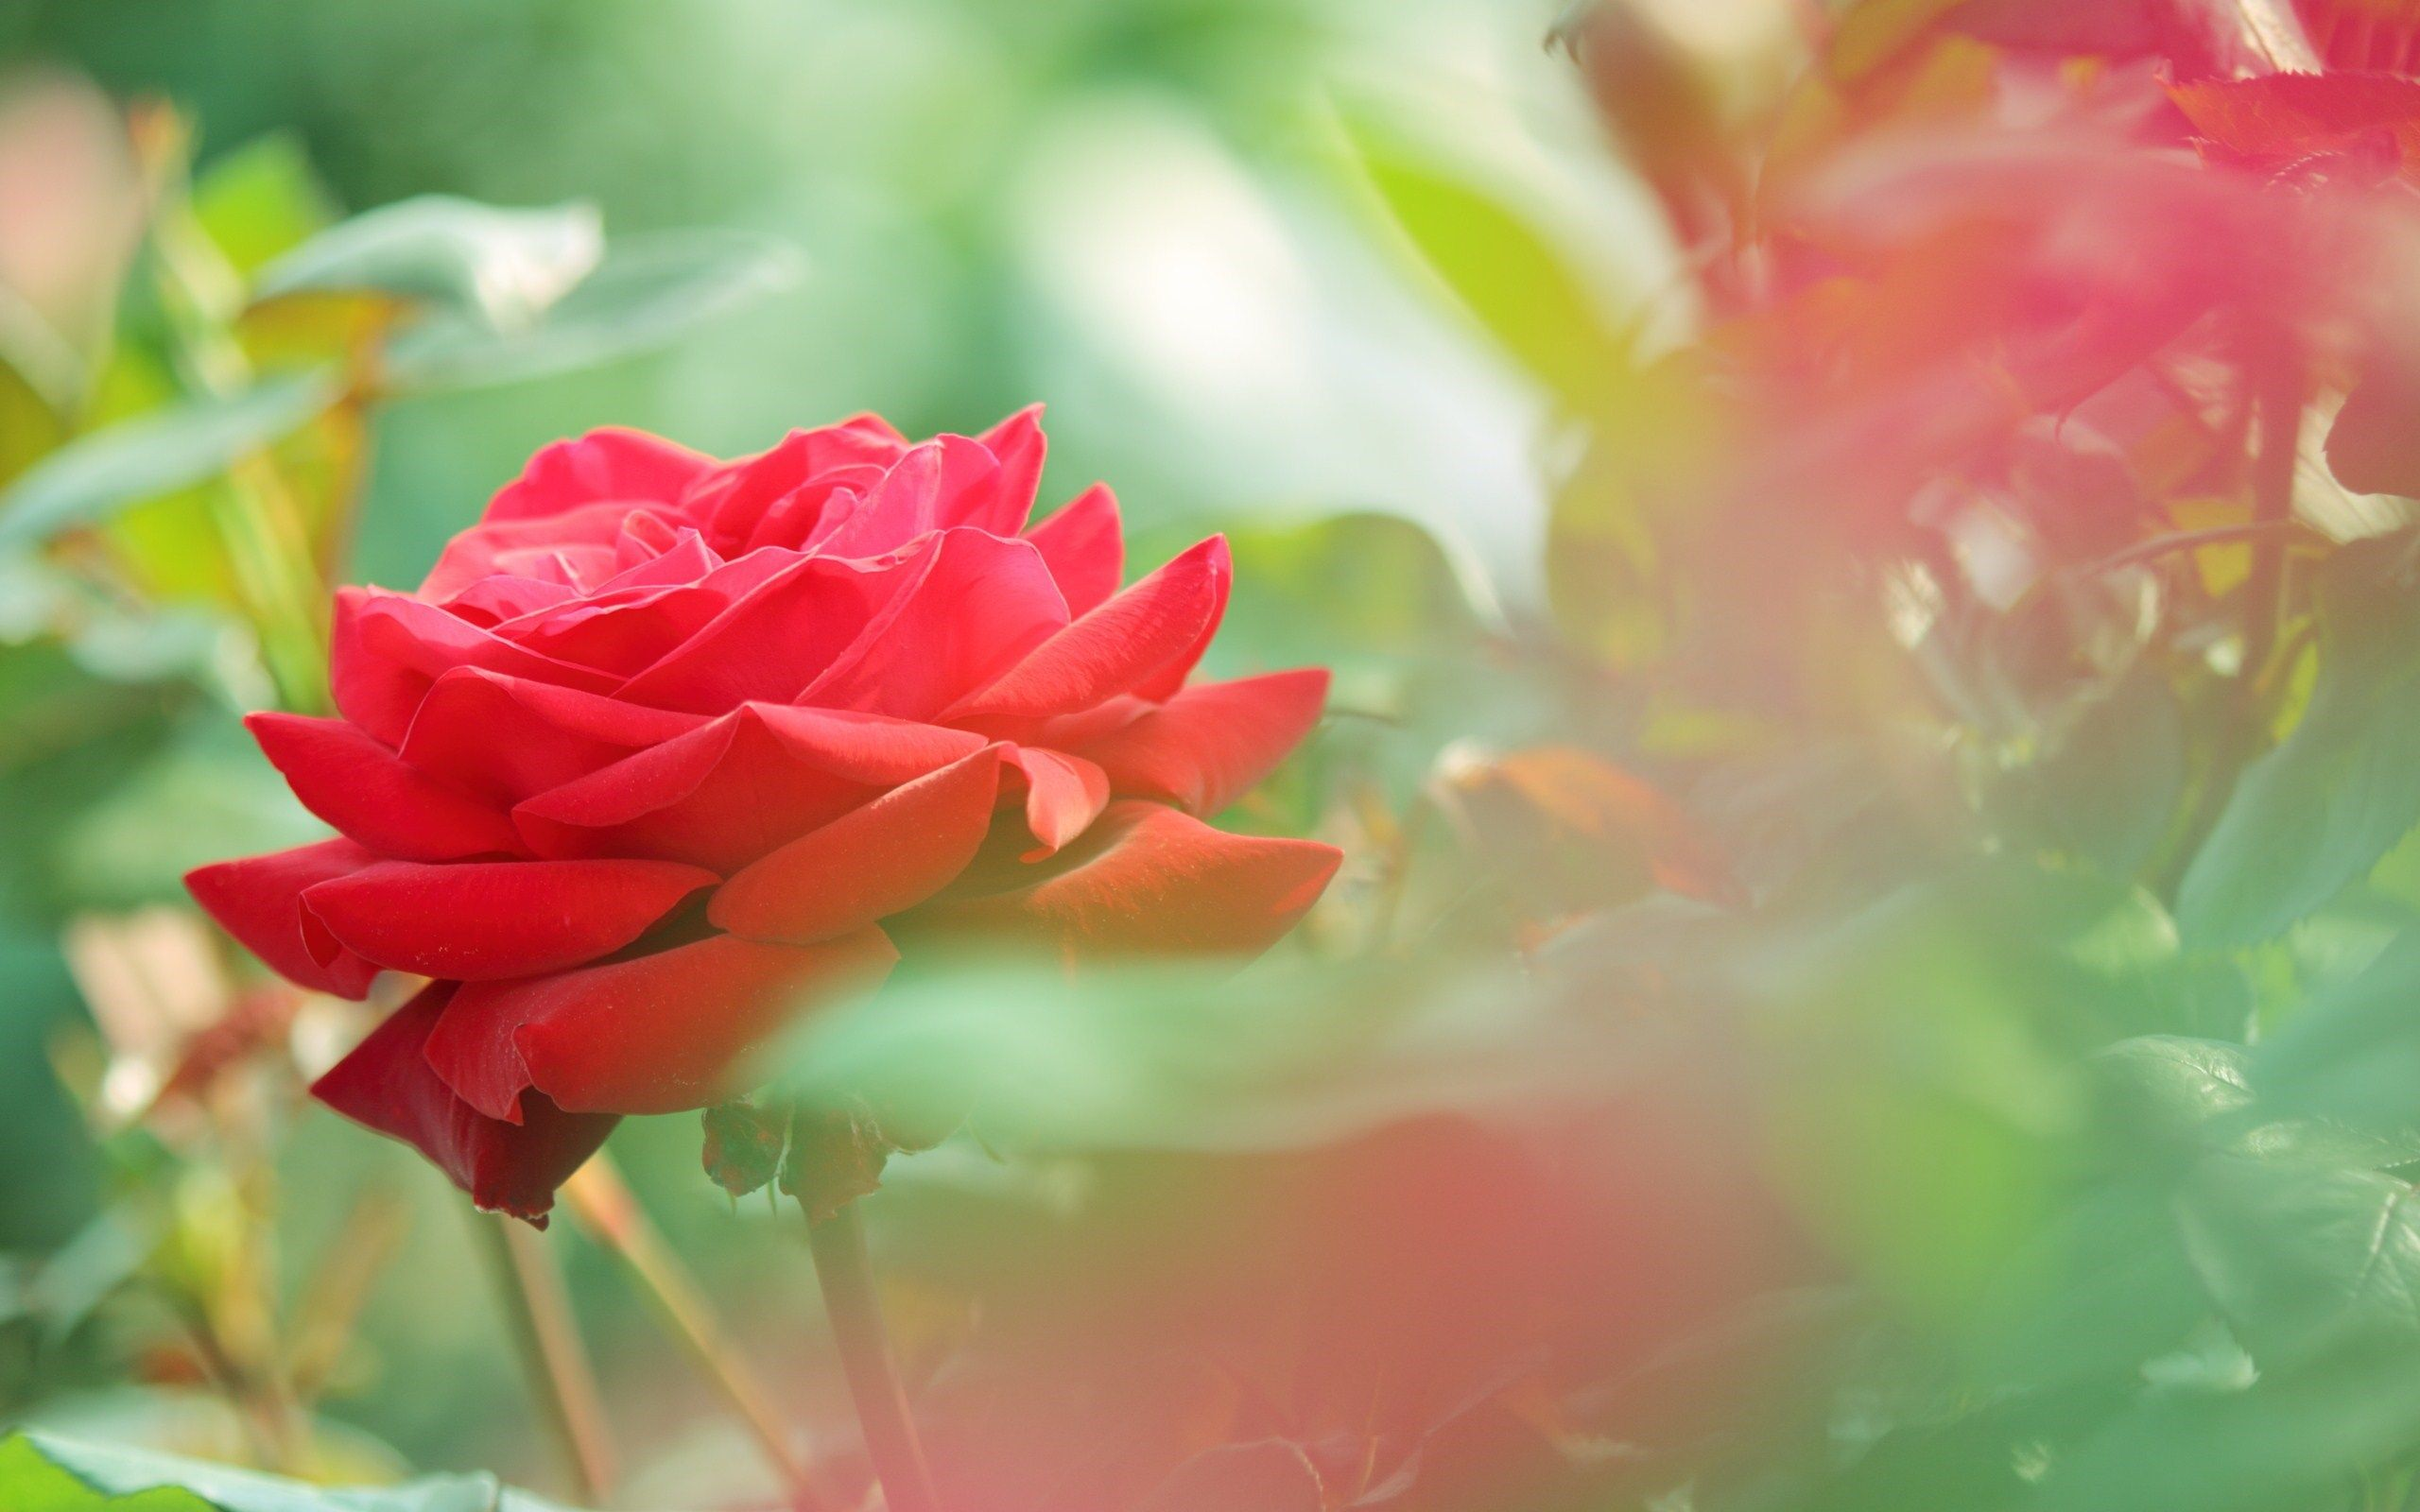 beautiful rose flowers images and wallpapers Download